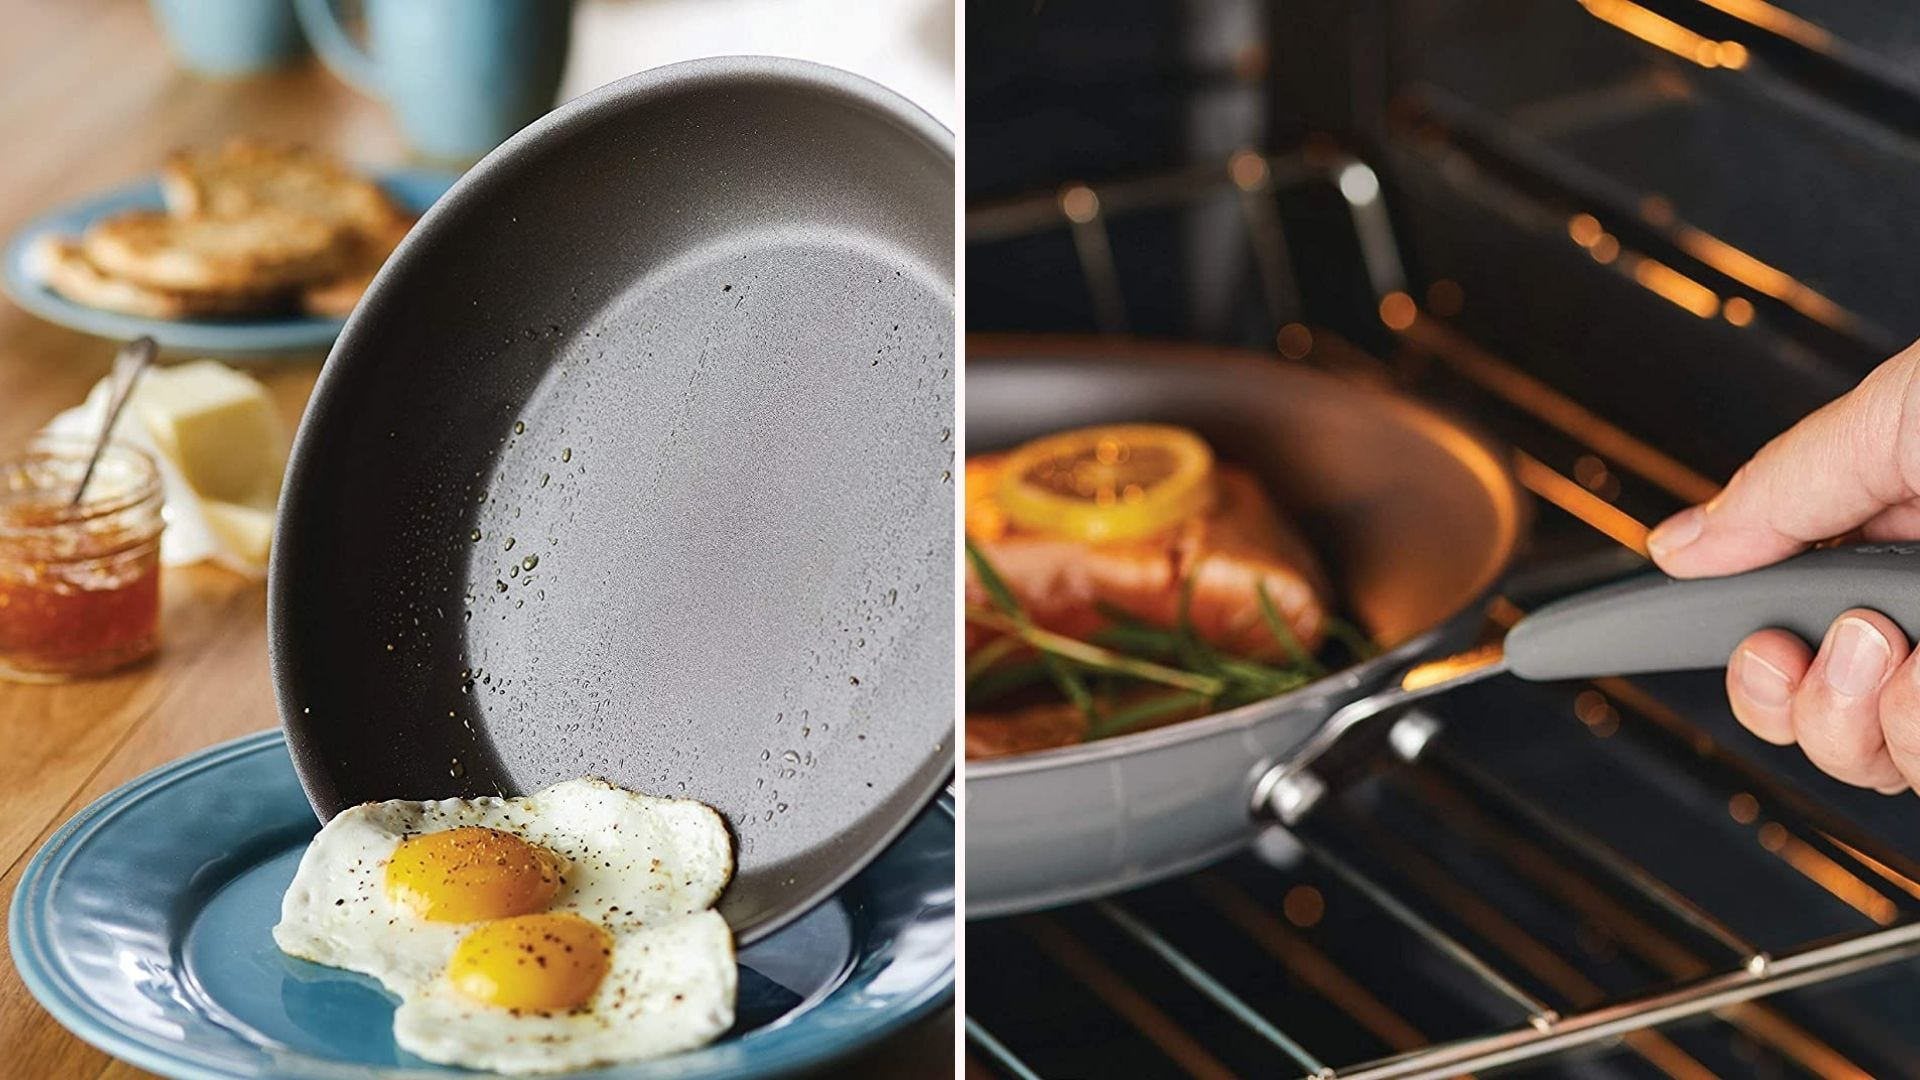 Two skillets from the Rachel Ray nonstick cookware collection.